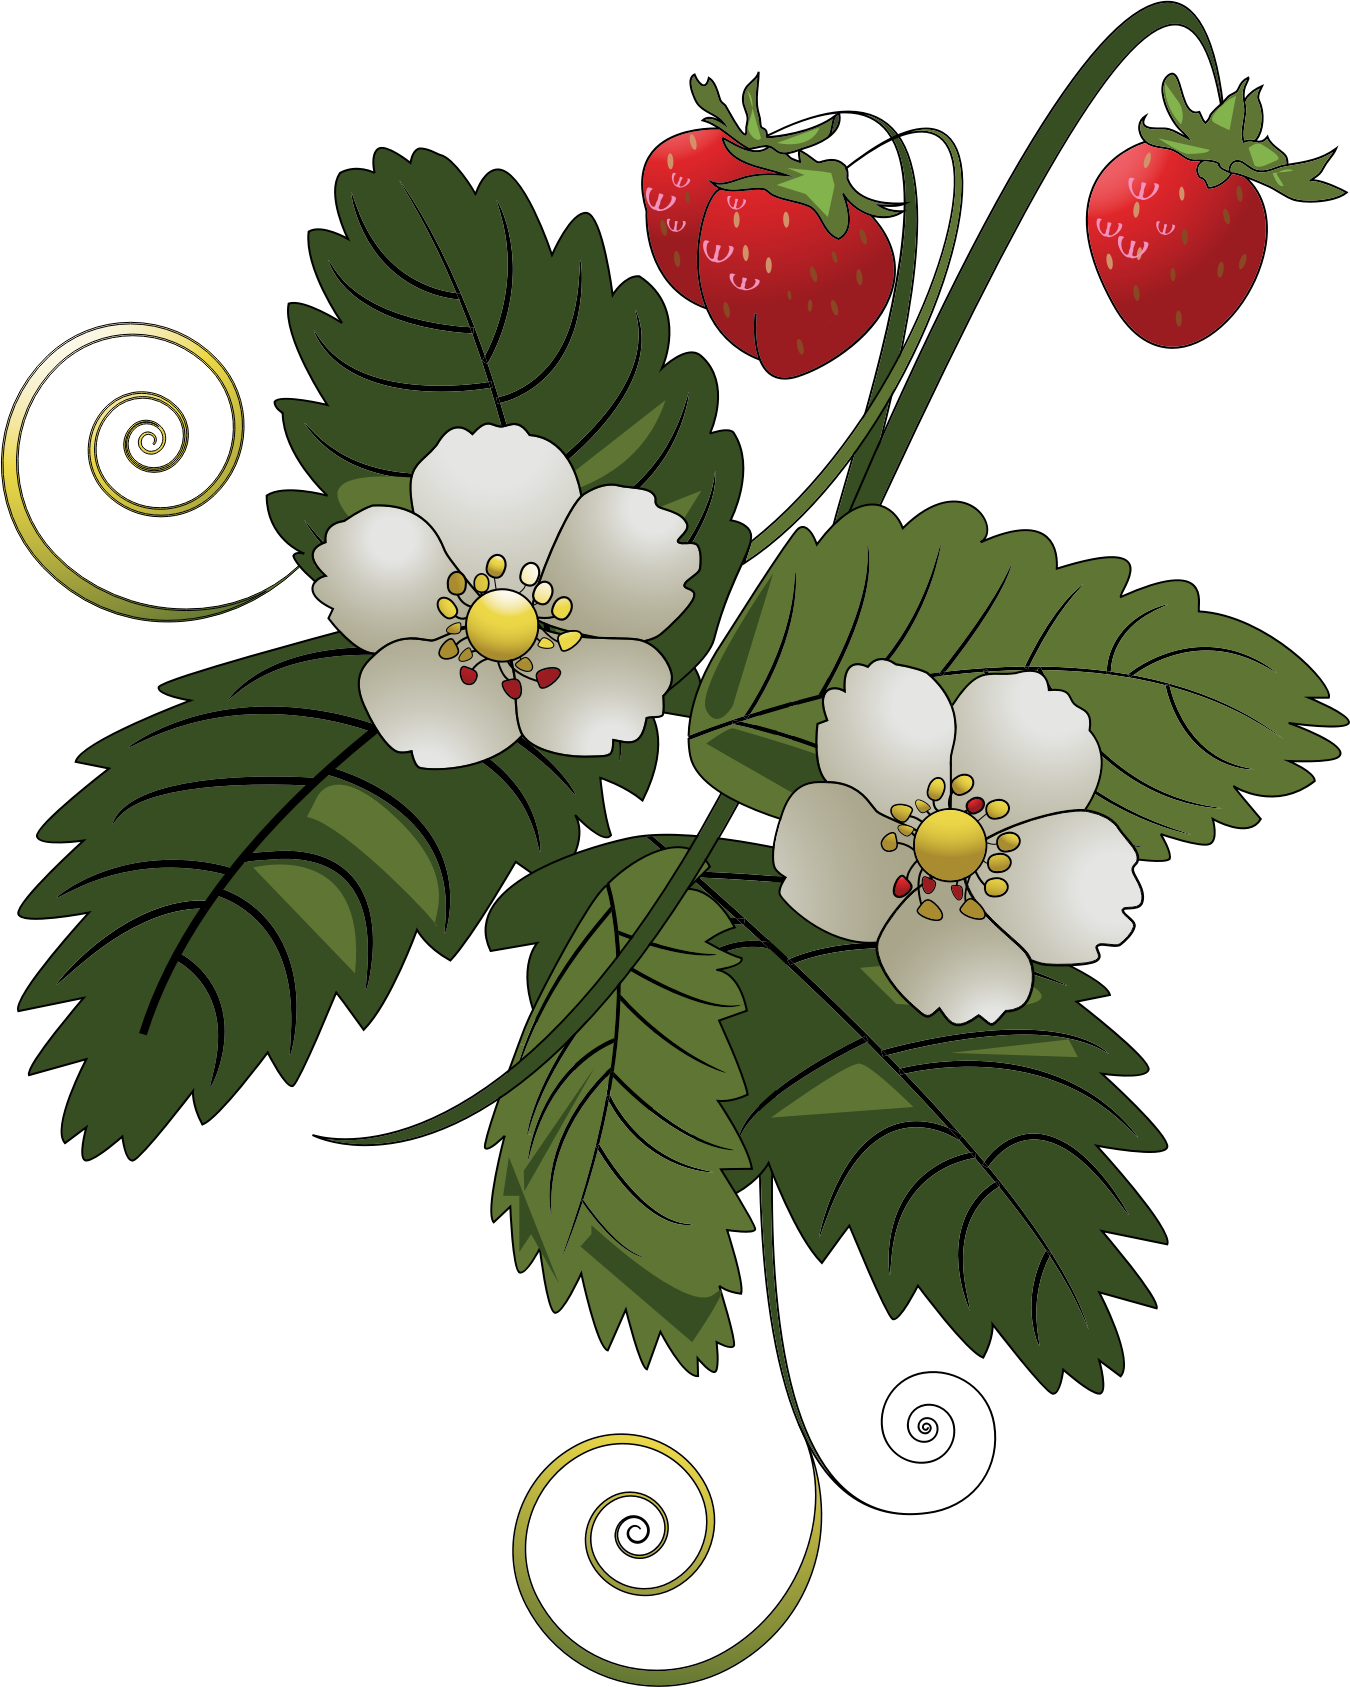 Big image png. Strawberries clipart strawberry plant